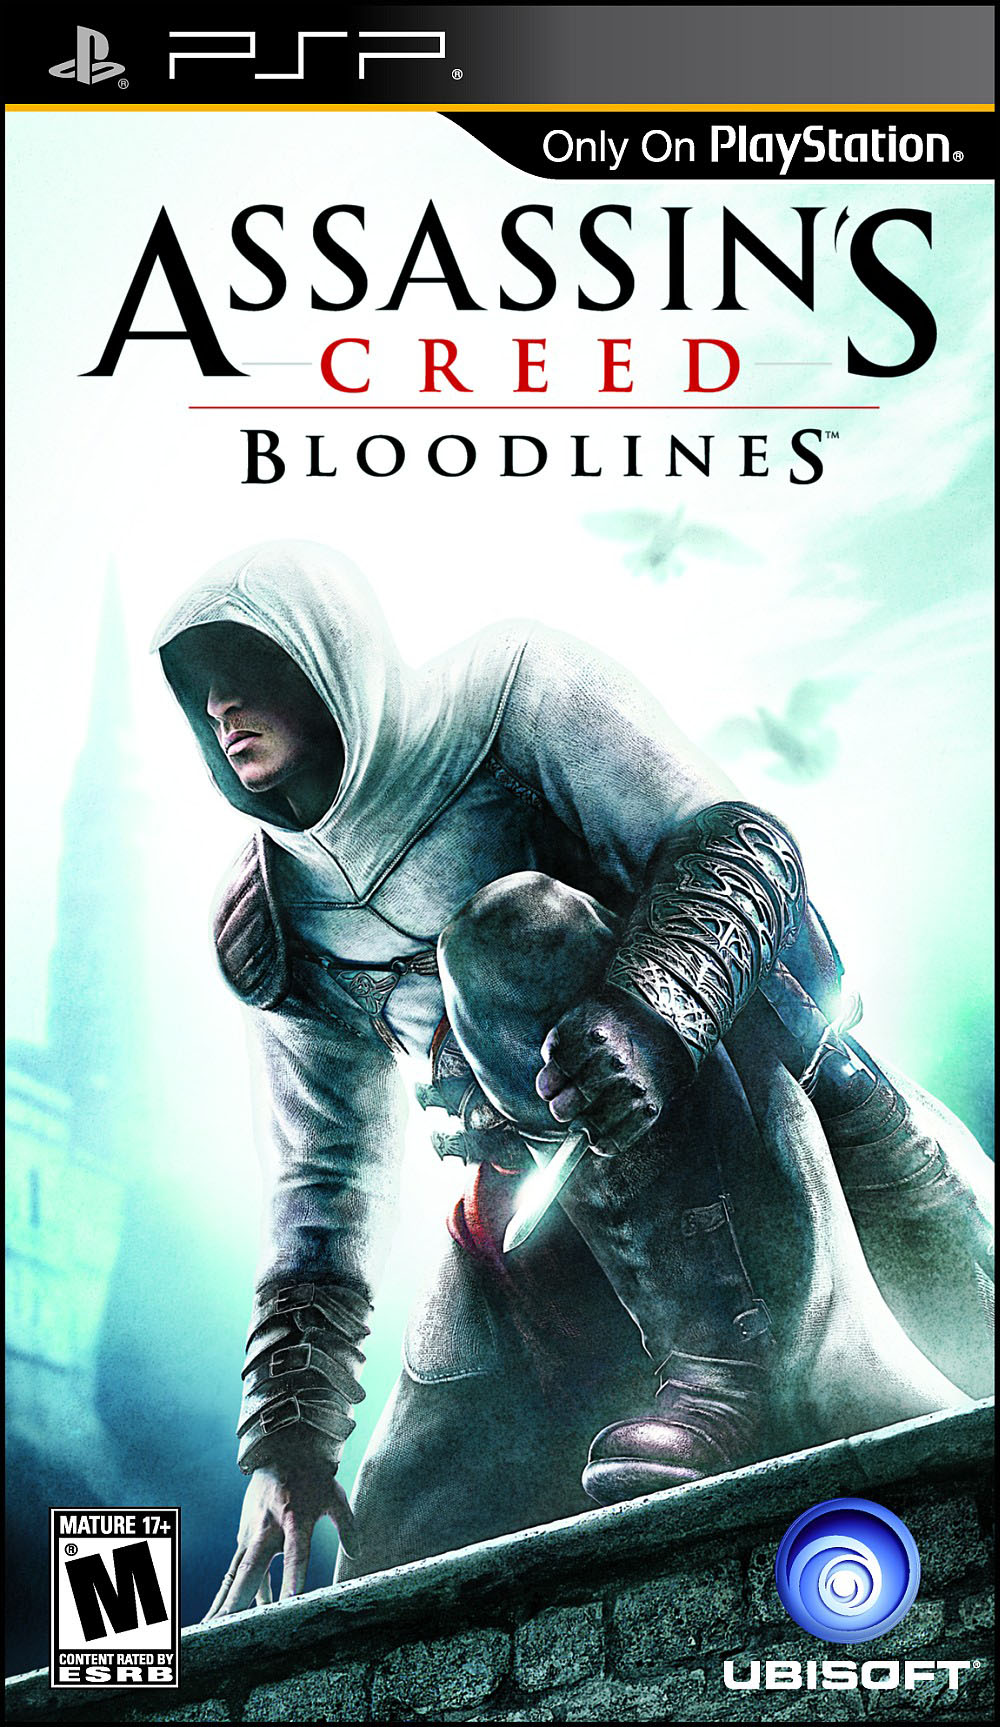 Assassins creed bloodlines psp iso free download [quick, easy and.